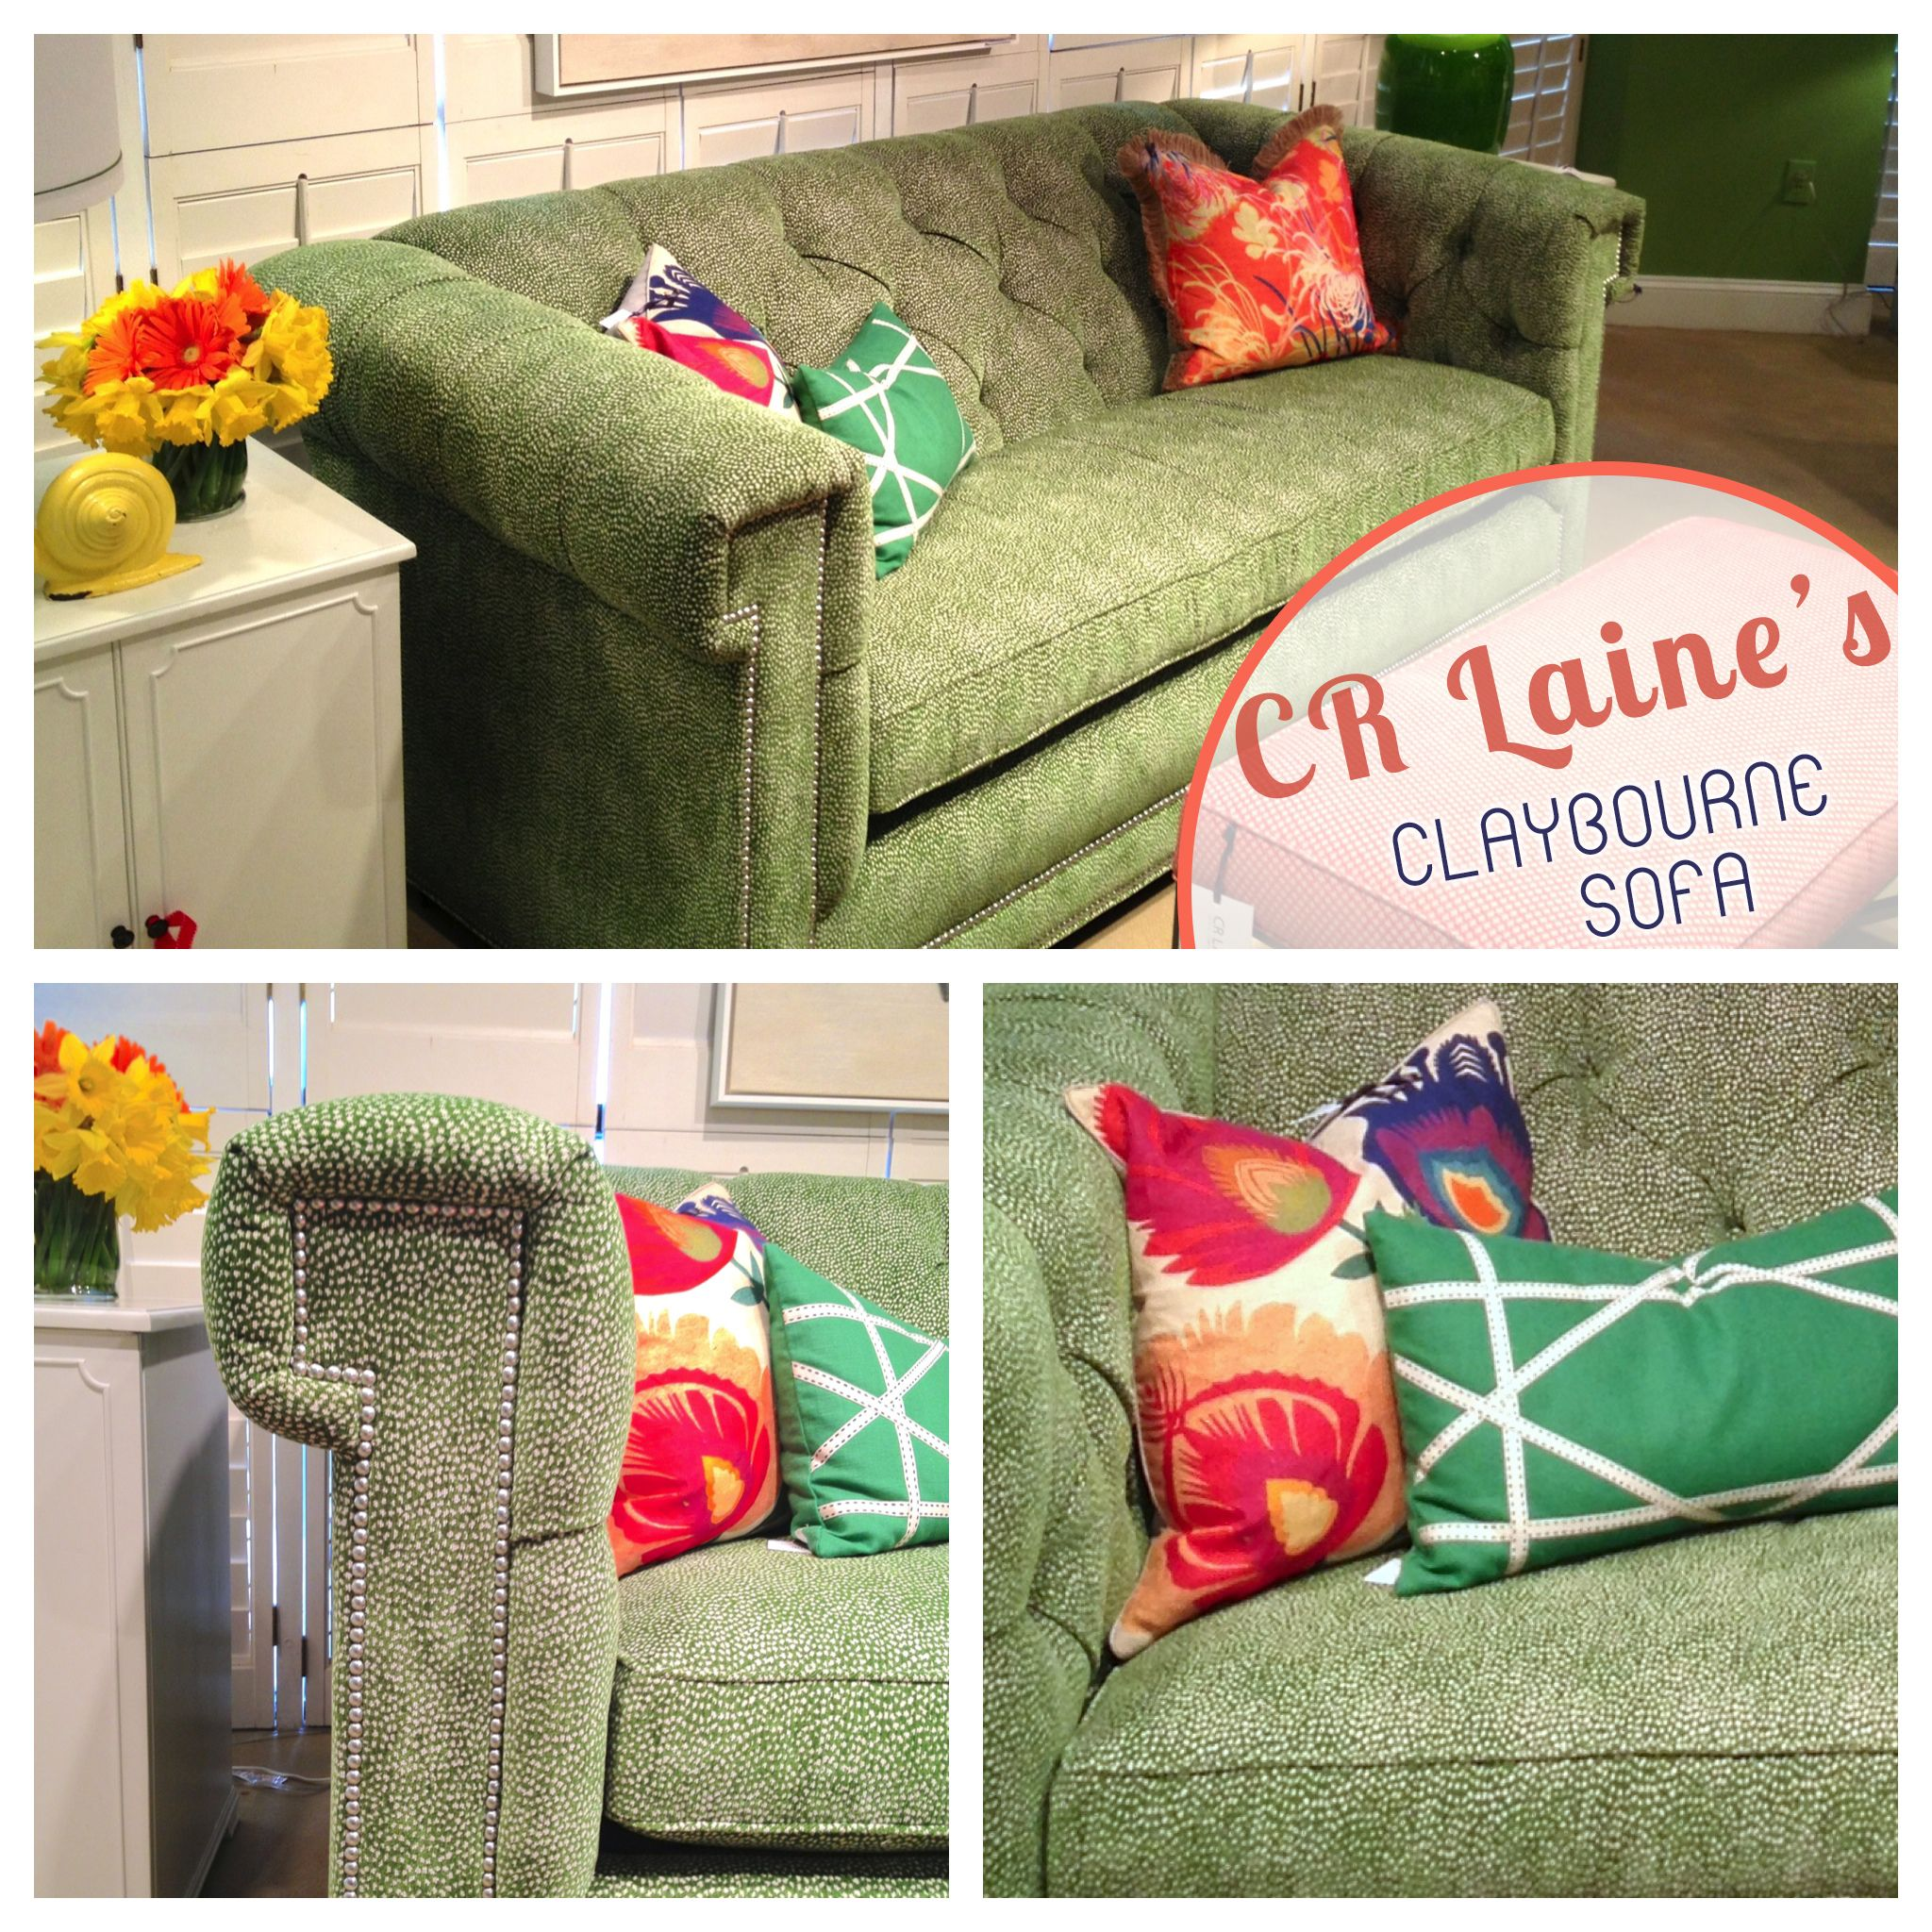 Cr Laine 310 N Hamilton Building 2nd Floor The Claybourne Sofa